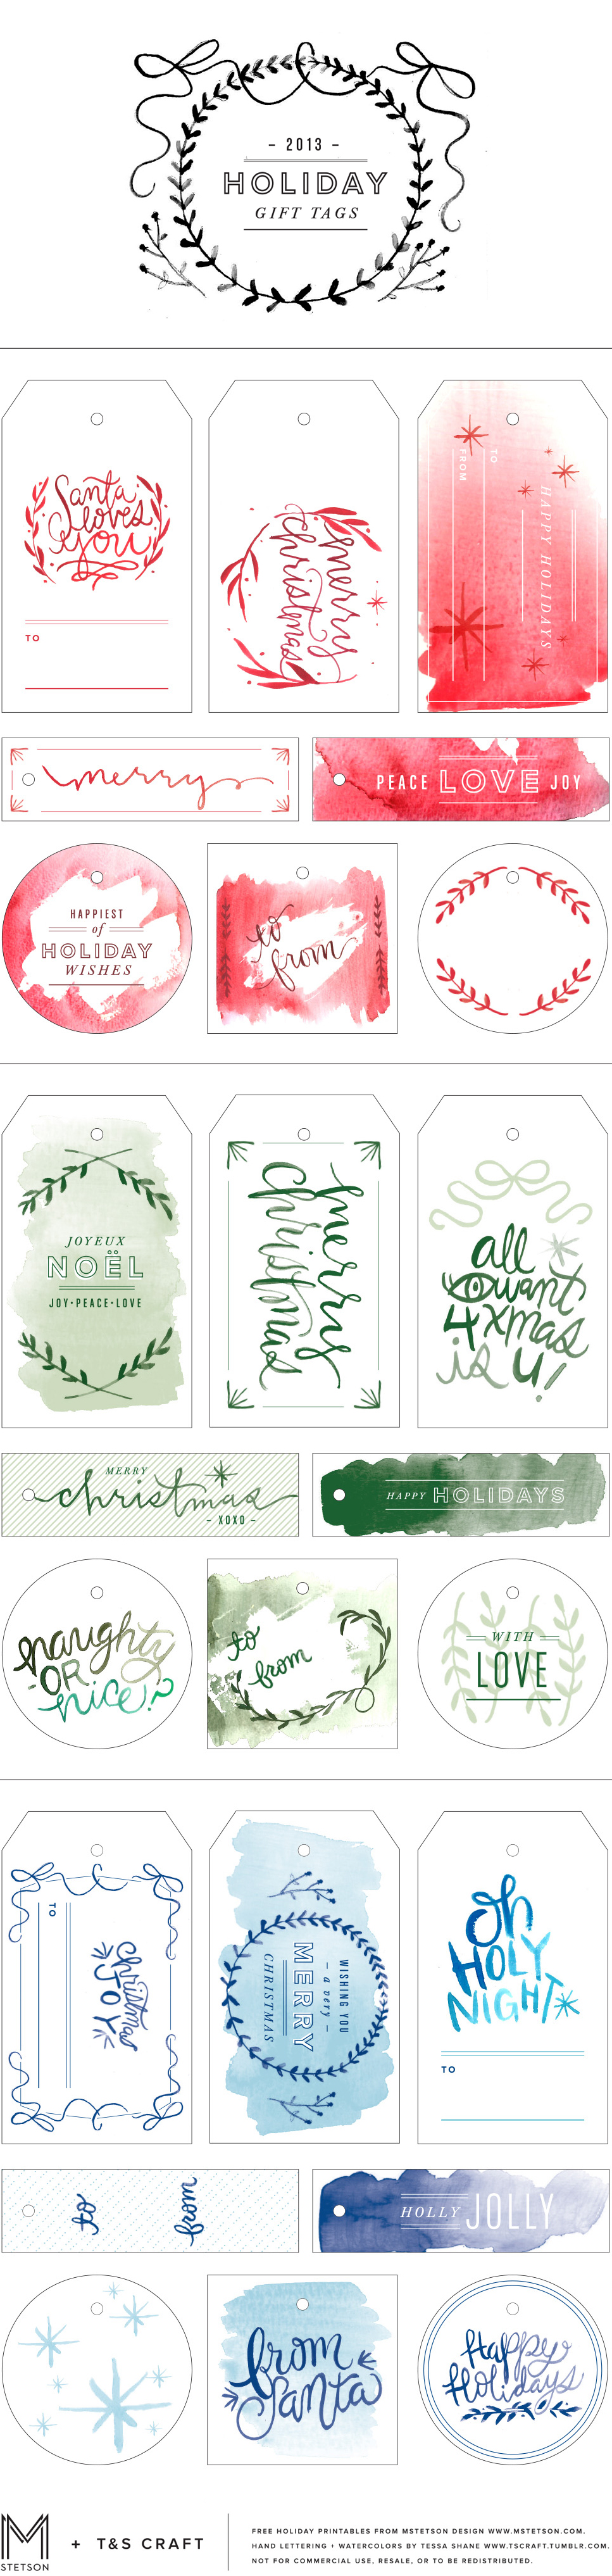 free watercolor hoilday christmas gift tag printables downloadable via mstetson design and ts craft